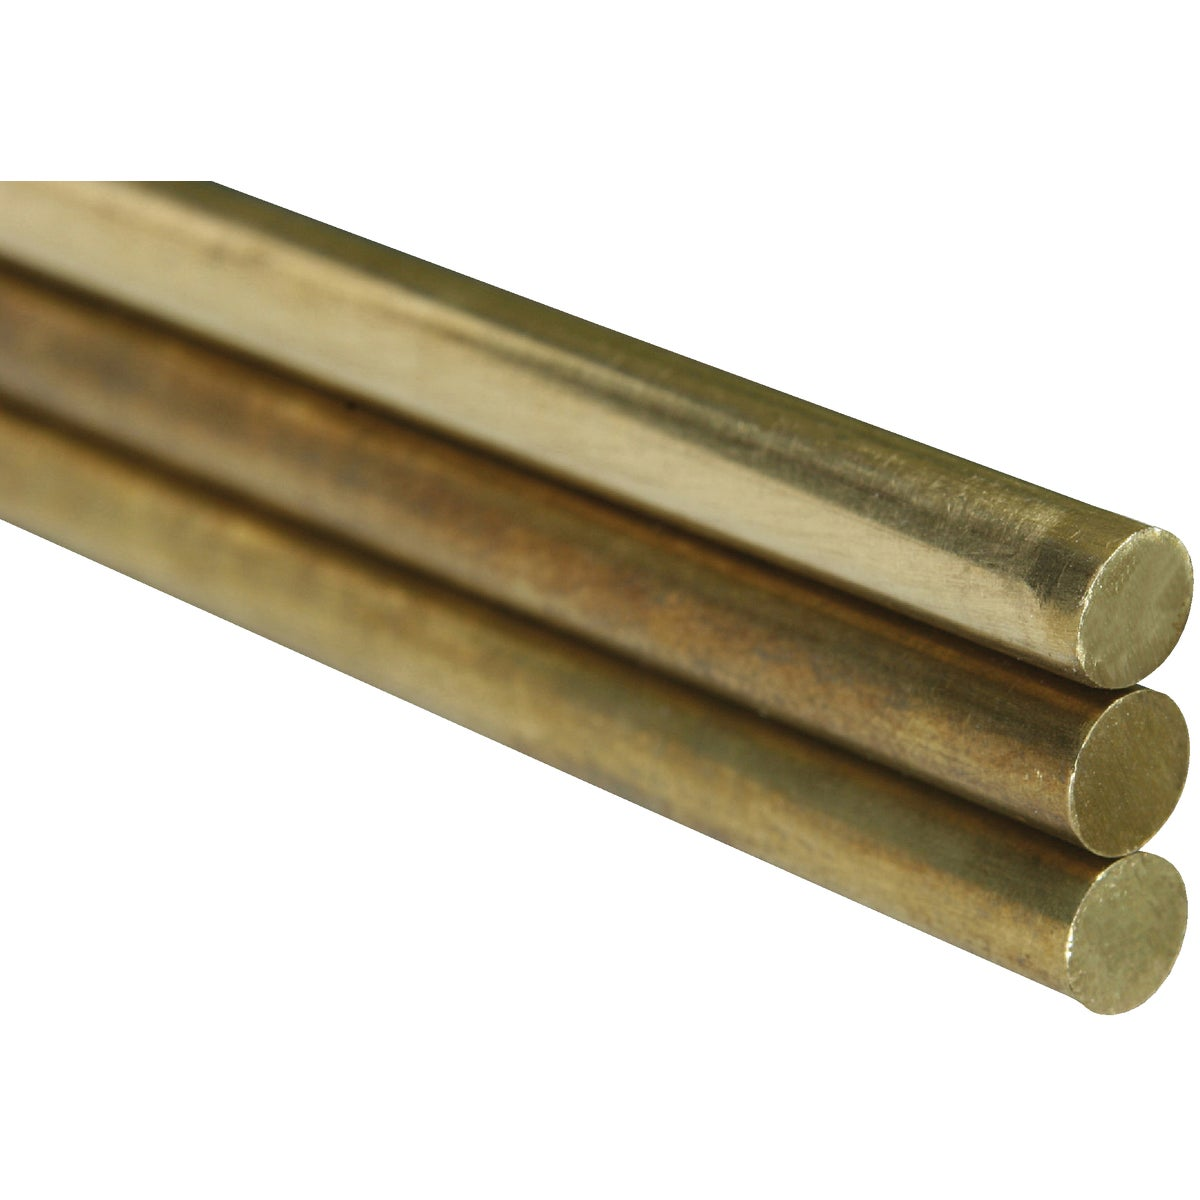 .020X12 SOLID BRASS ROD - 8159 by K&s Precision Metals